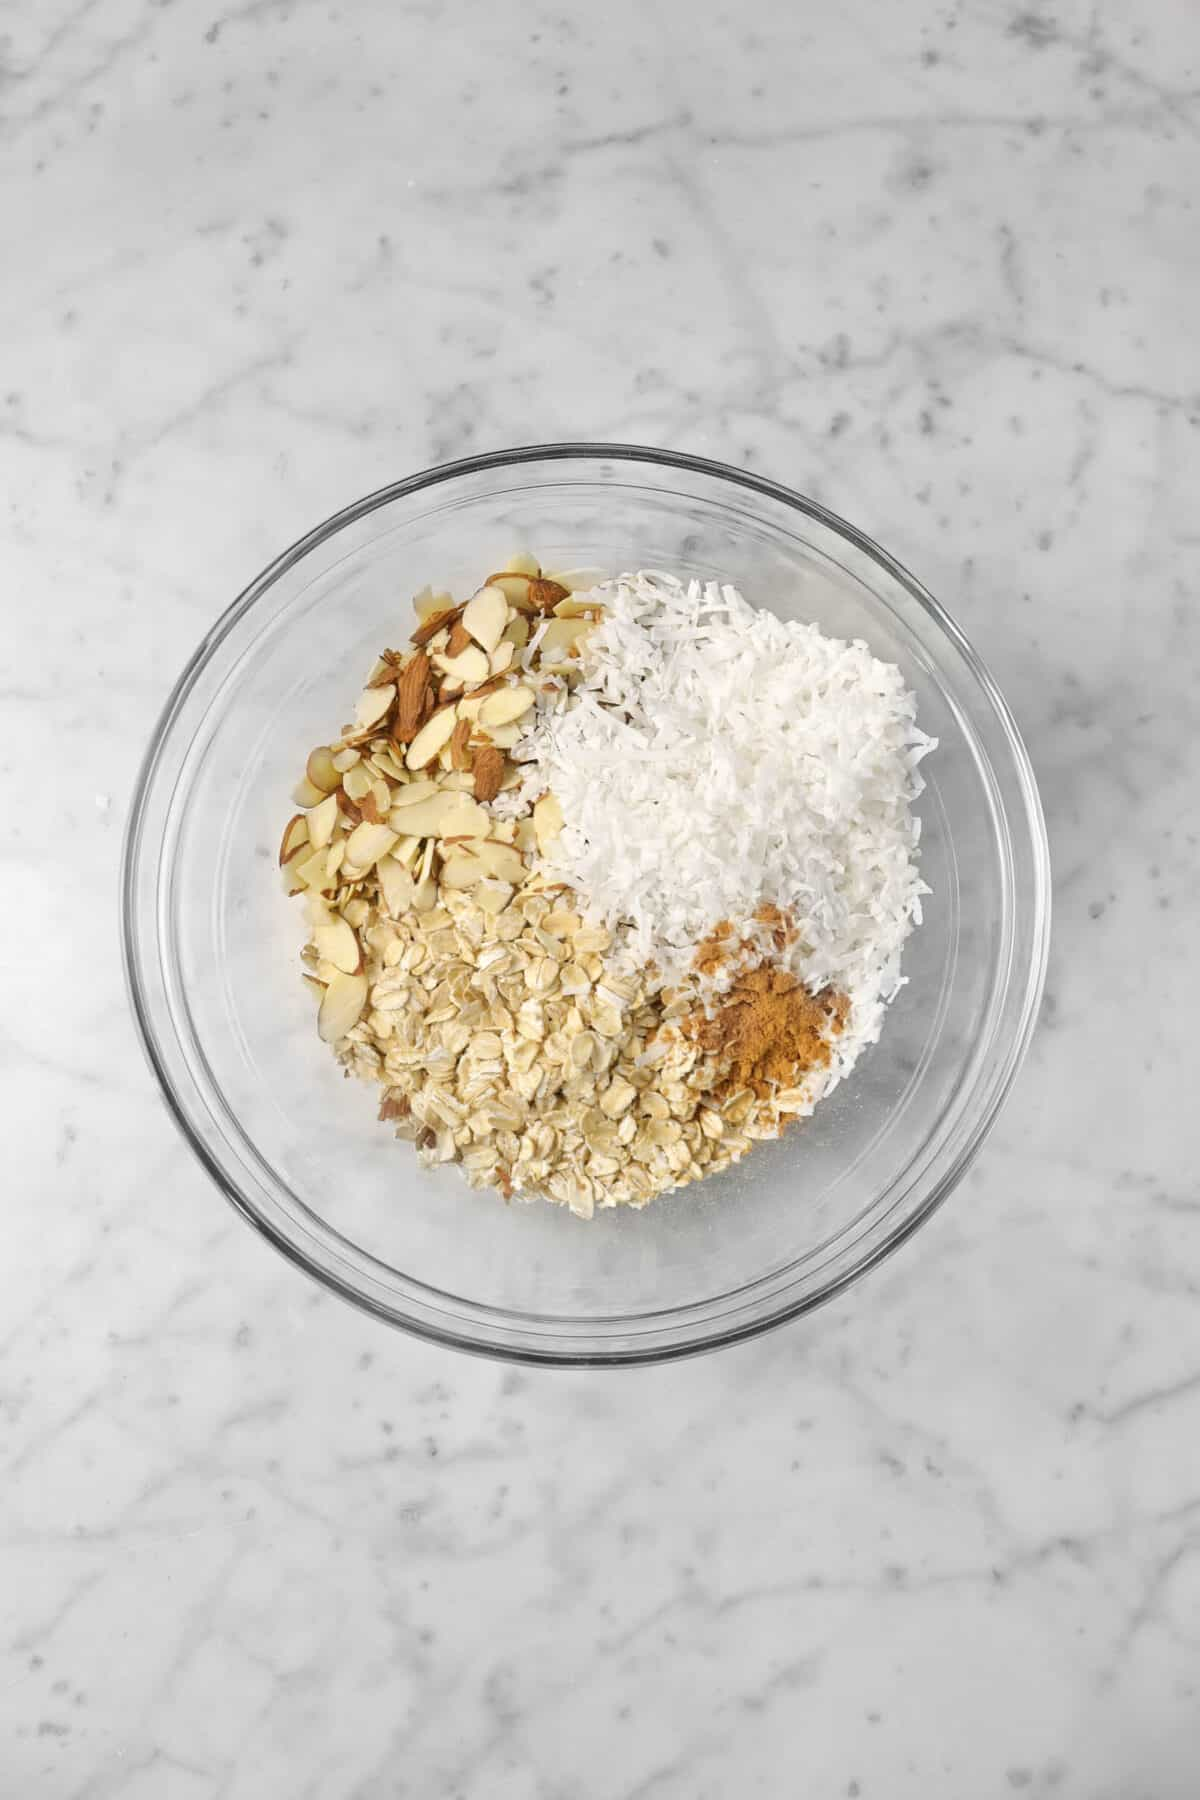 oatmeal, slivered almonds, shredded coconut, and cinnamon in a glass bowl